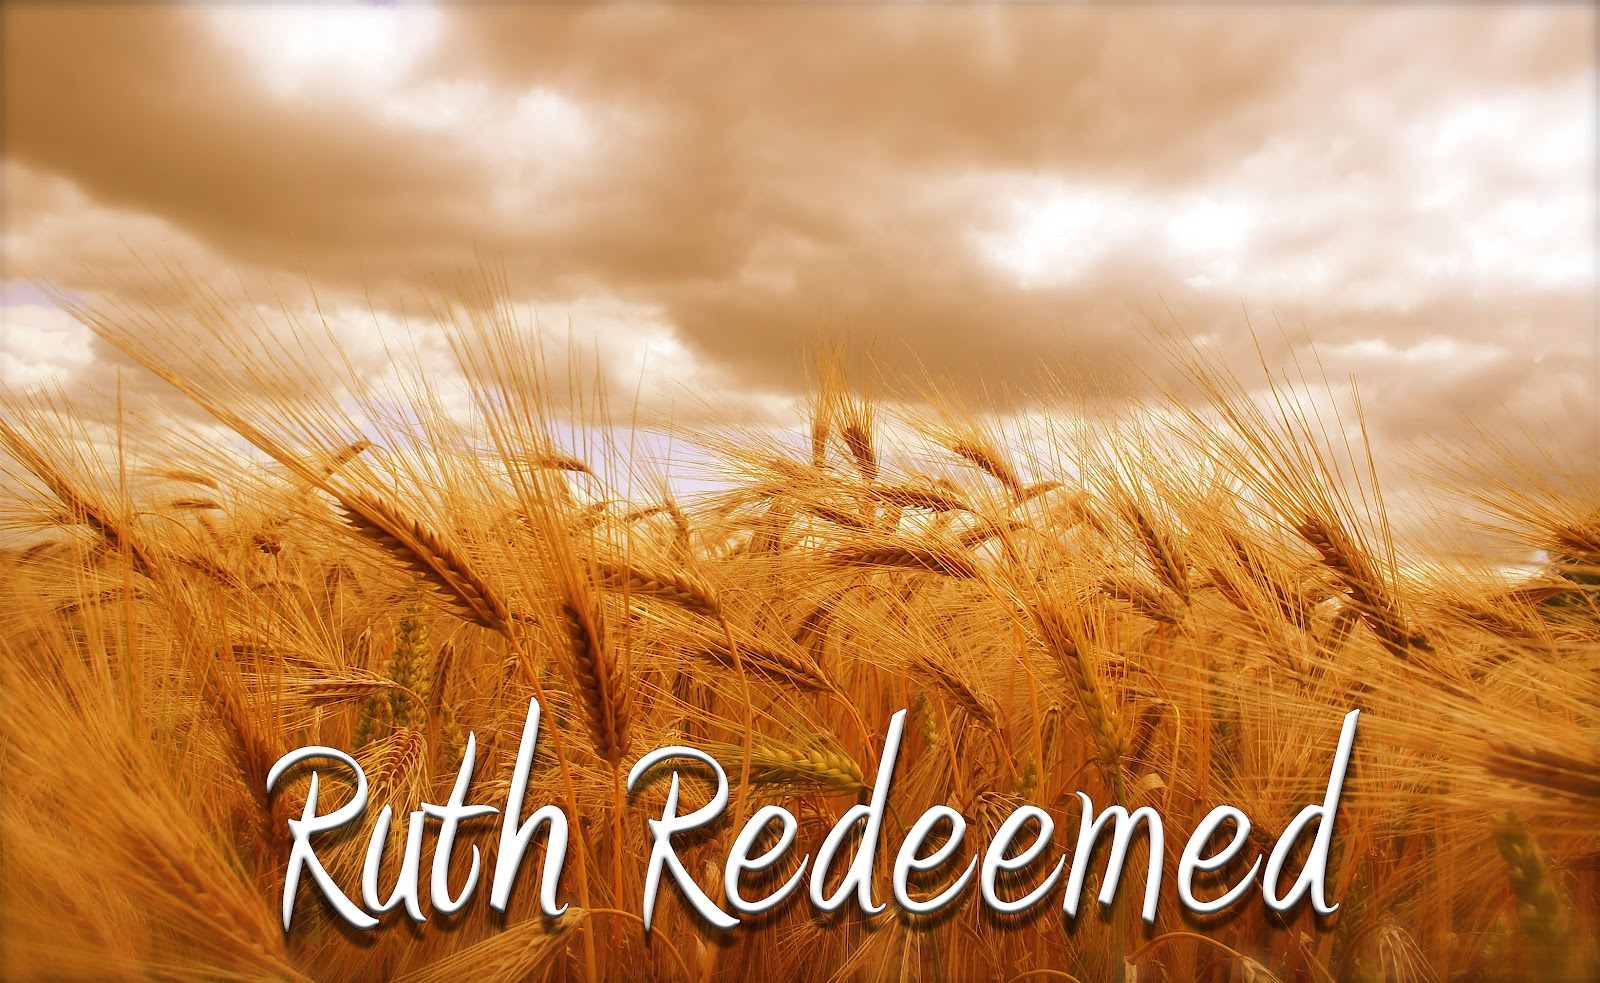 Bible study questions on ruth chapter 1 - nielatitir's diary